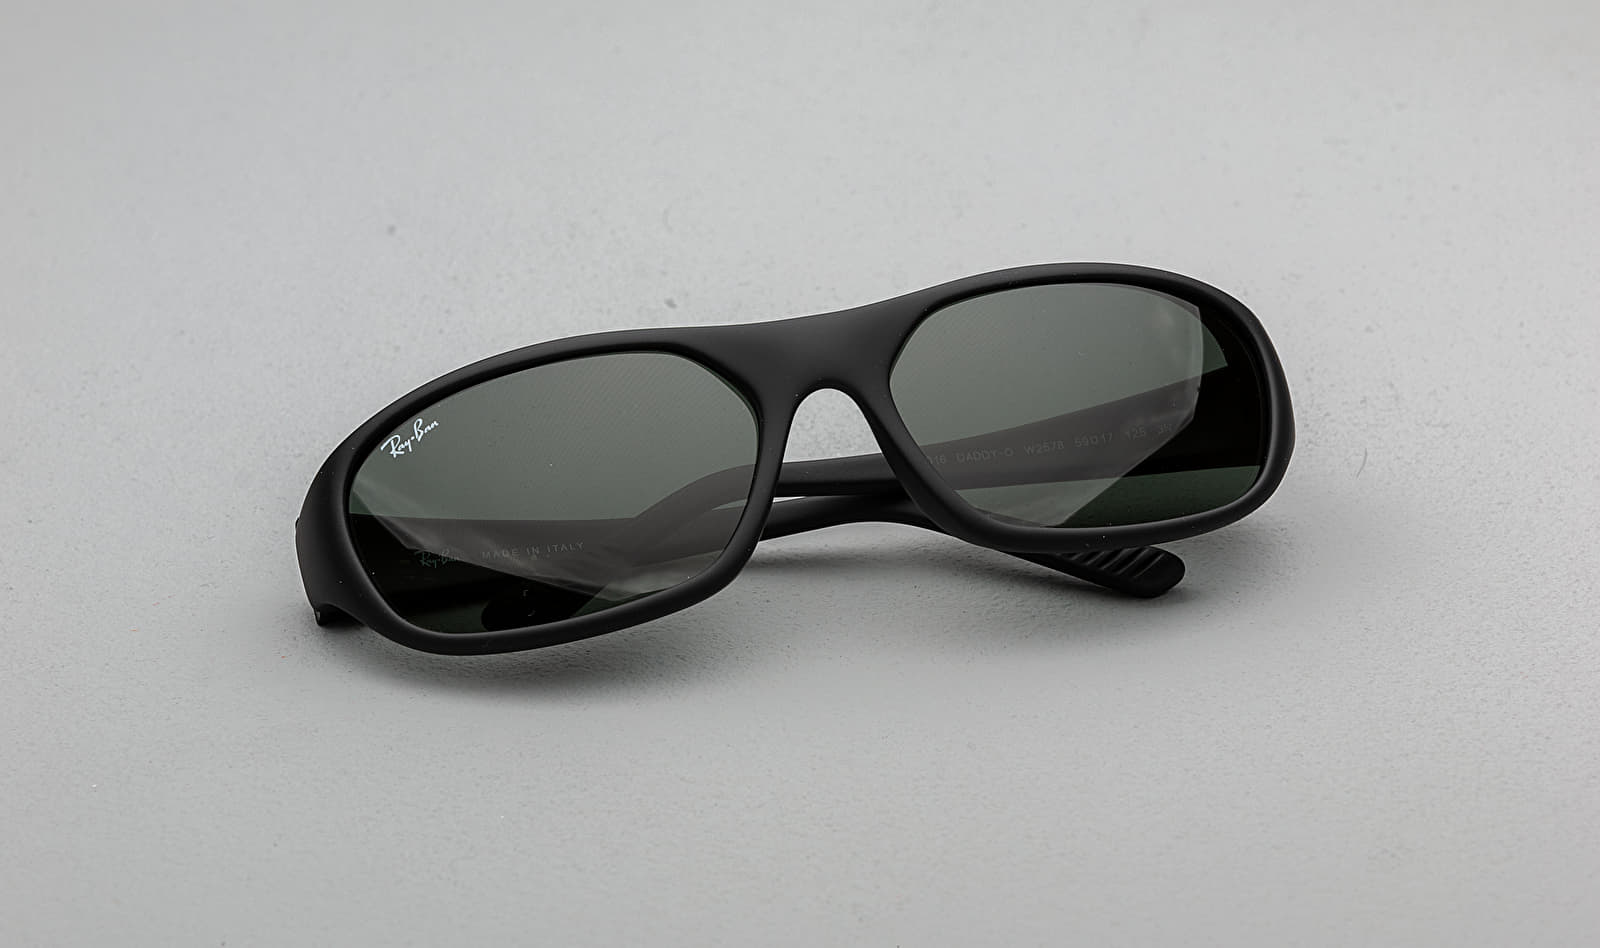 Ray Ban DaddyO Sunglasses Black